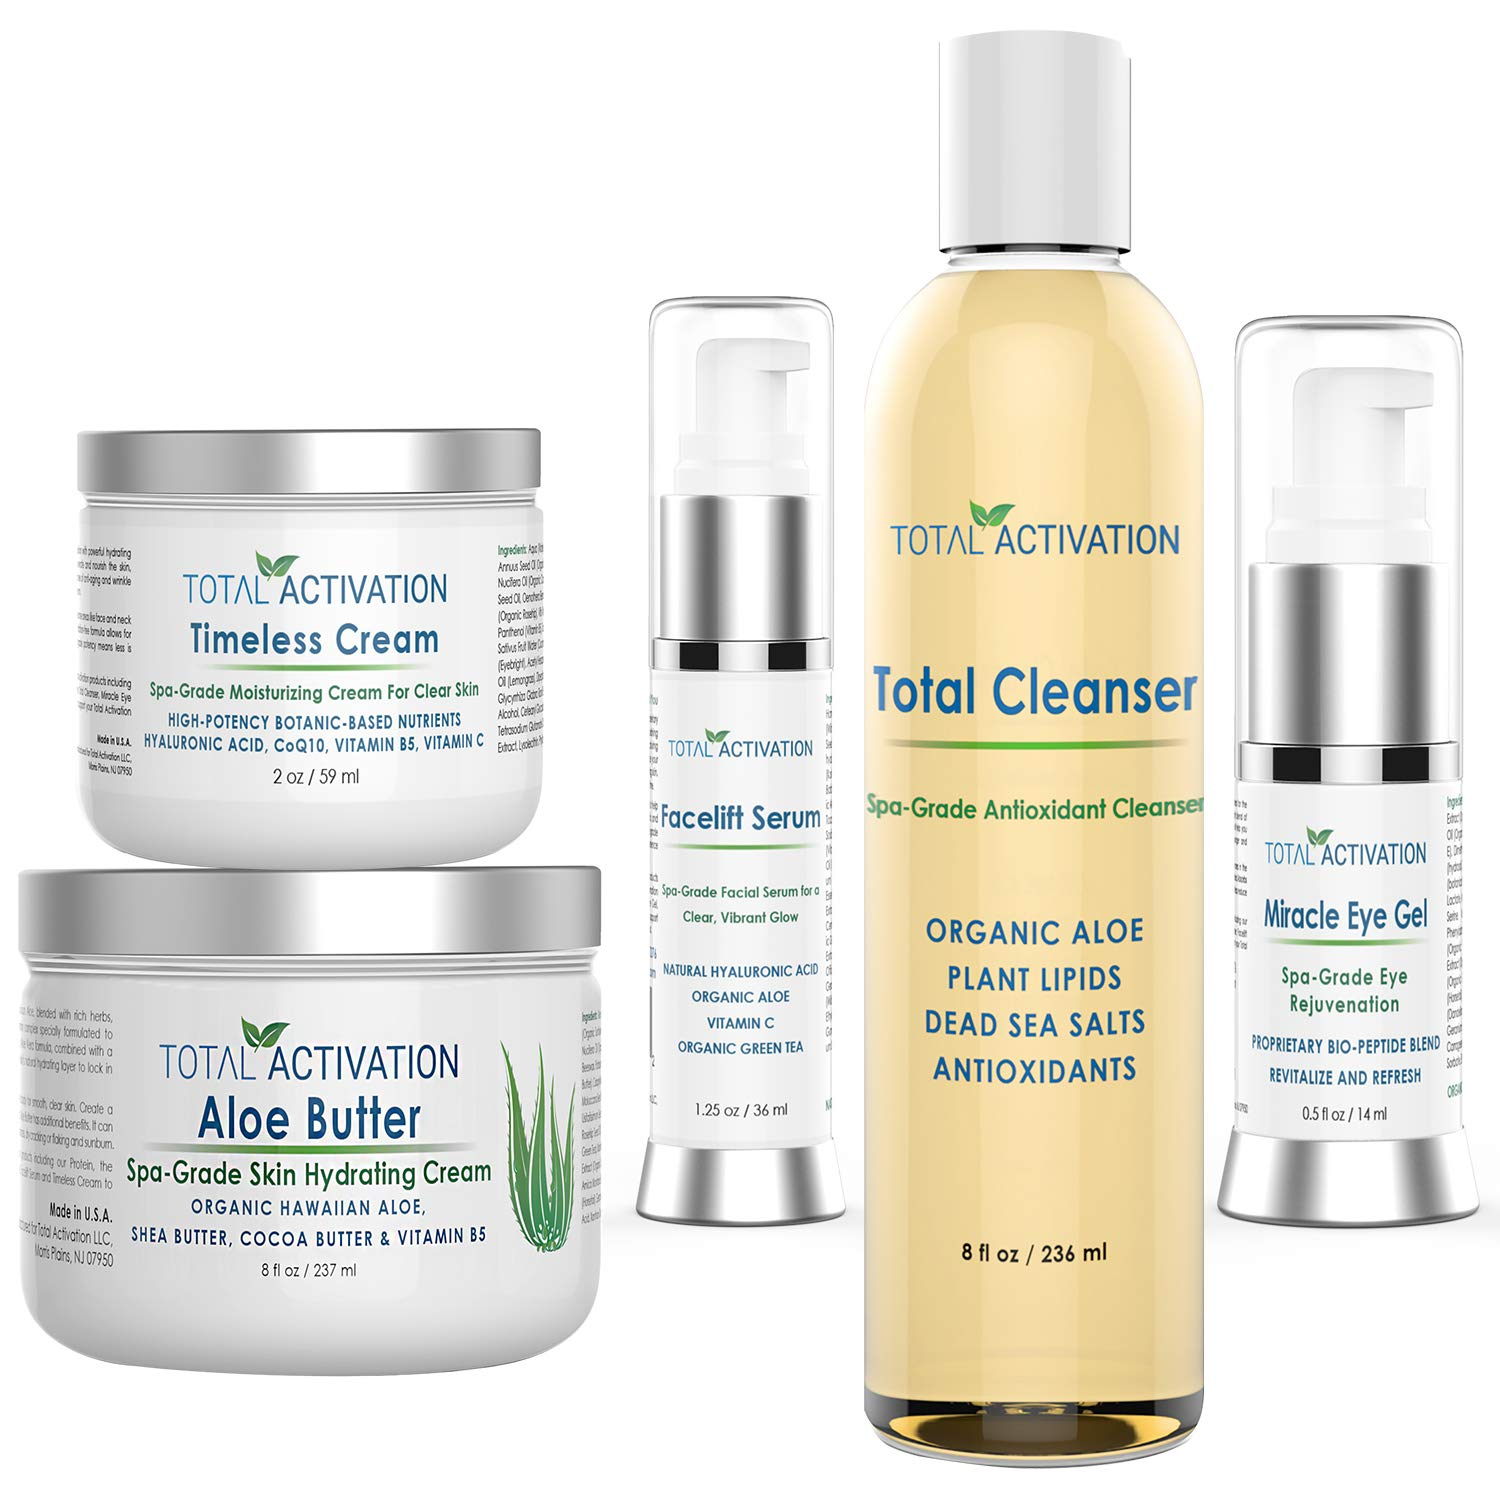 Total Activation 5-Step Skin Care System, Daily Essential for Men and Women, for Sensitive Skin, Dry or Oily Skin, for a Glowing Balanced Skin, Lightens Dark Spots, Restore Elasticity & Hydrate Skin by Total Activation